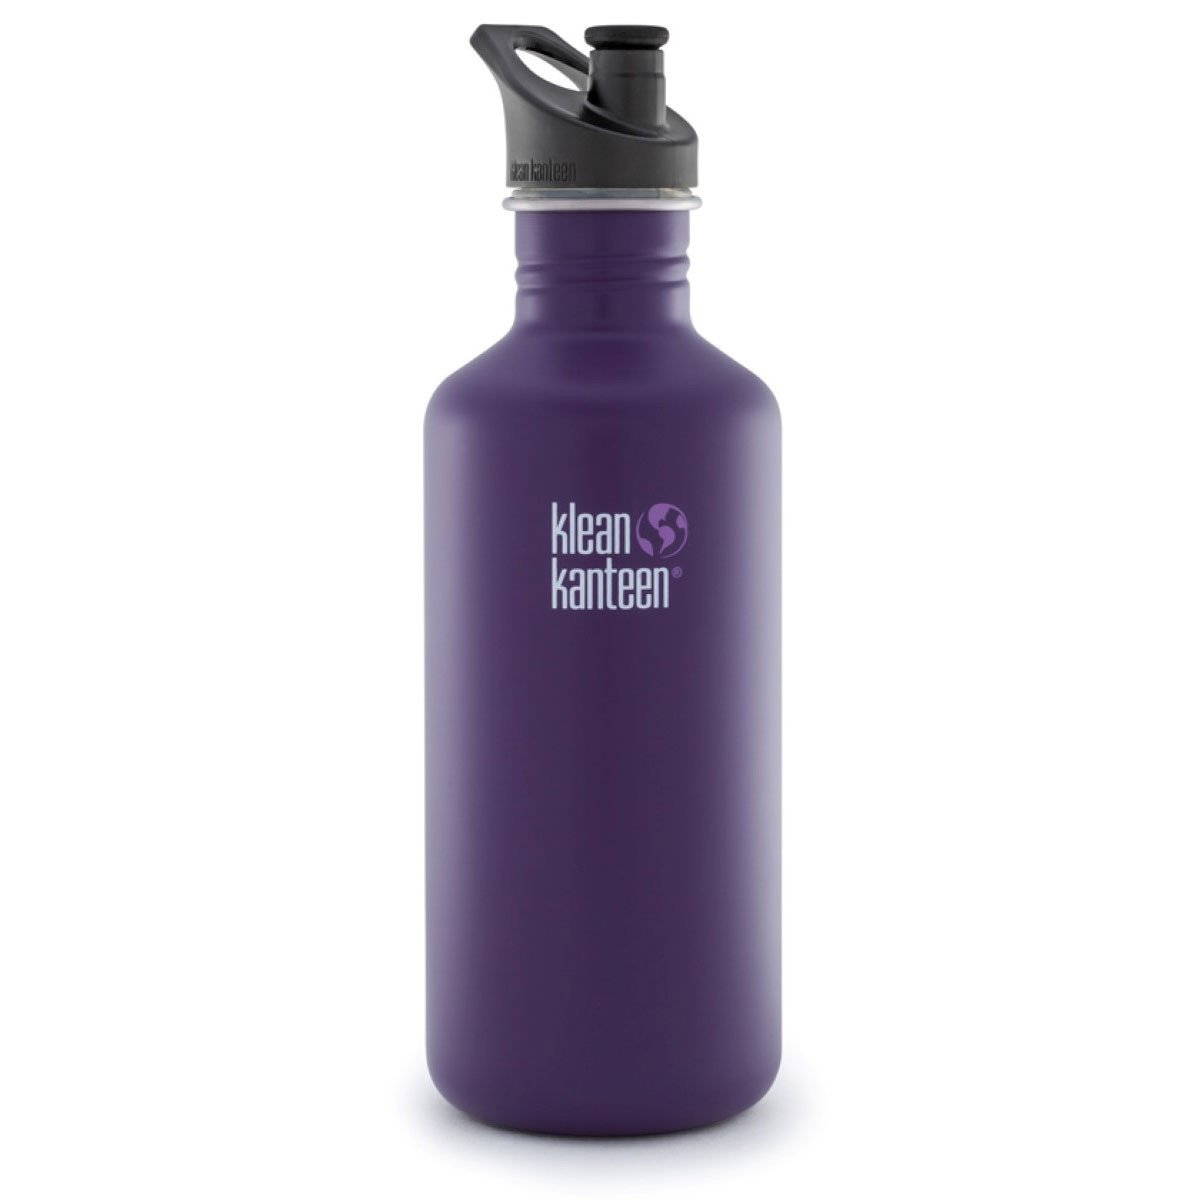 Klean Kanteen Stainless Steel Classic Water Bottle Klean Kanteen Water Bottles at Little Earth Nest Eco Shop